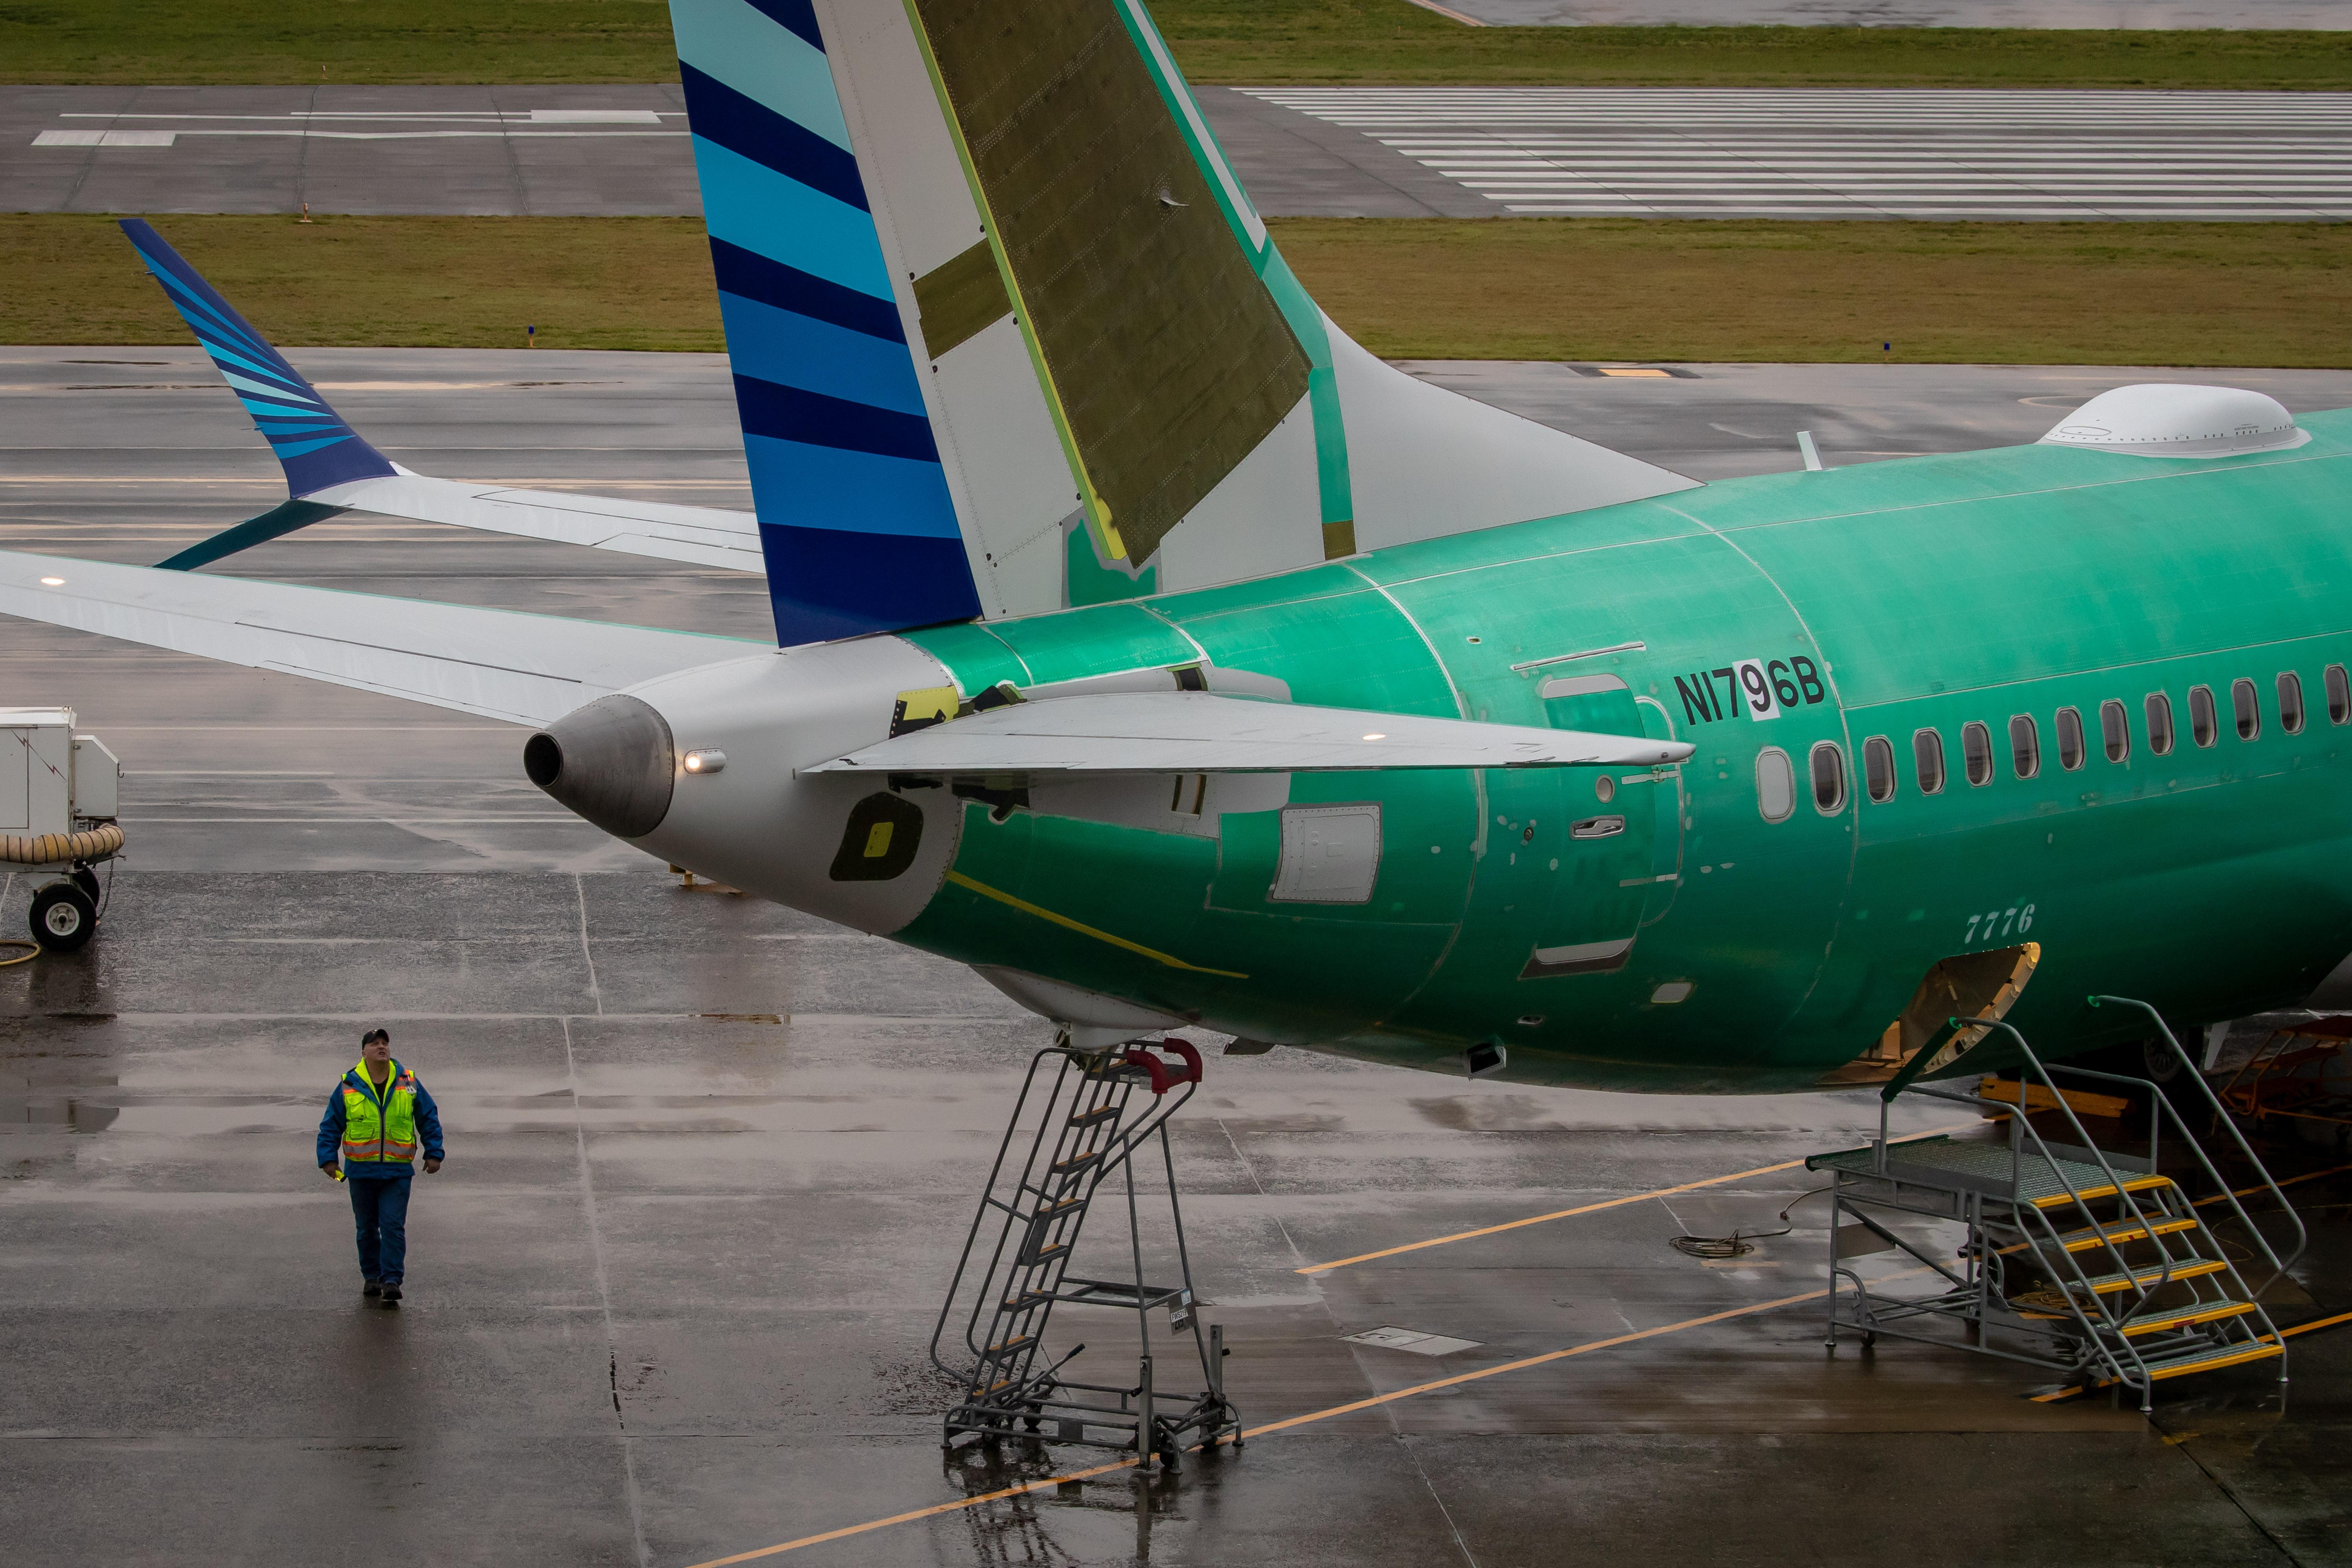 Boeing 737 Max: debris found in fuel tanks of grounded planes